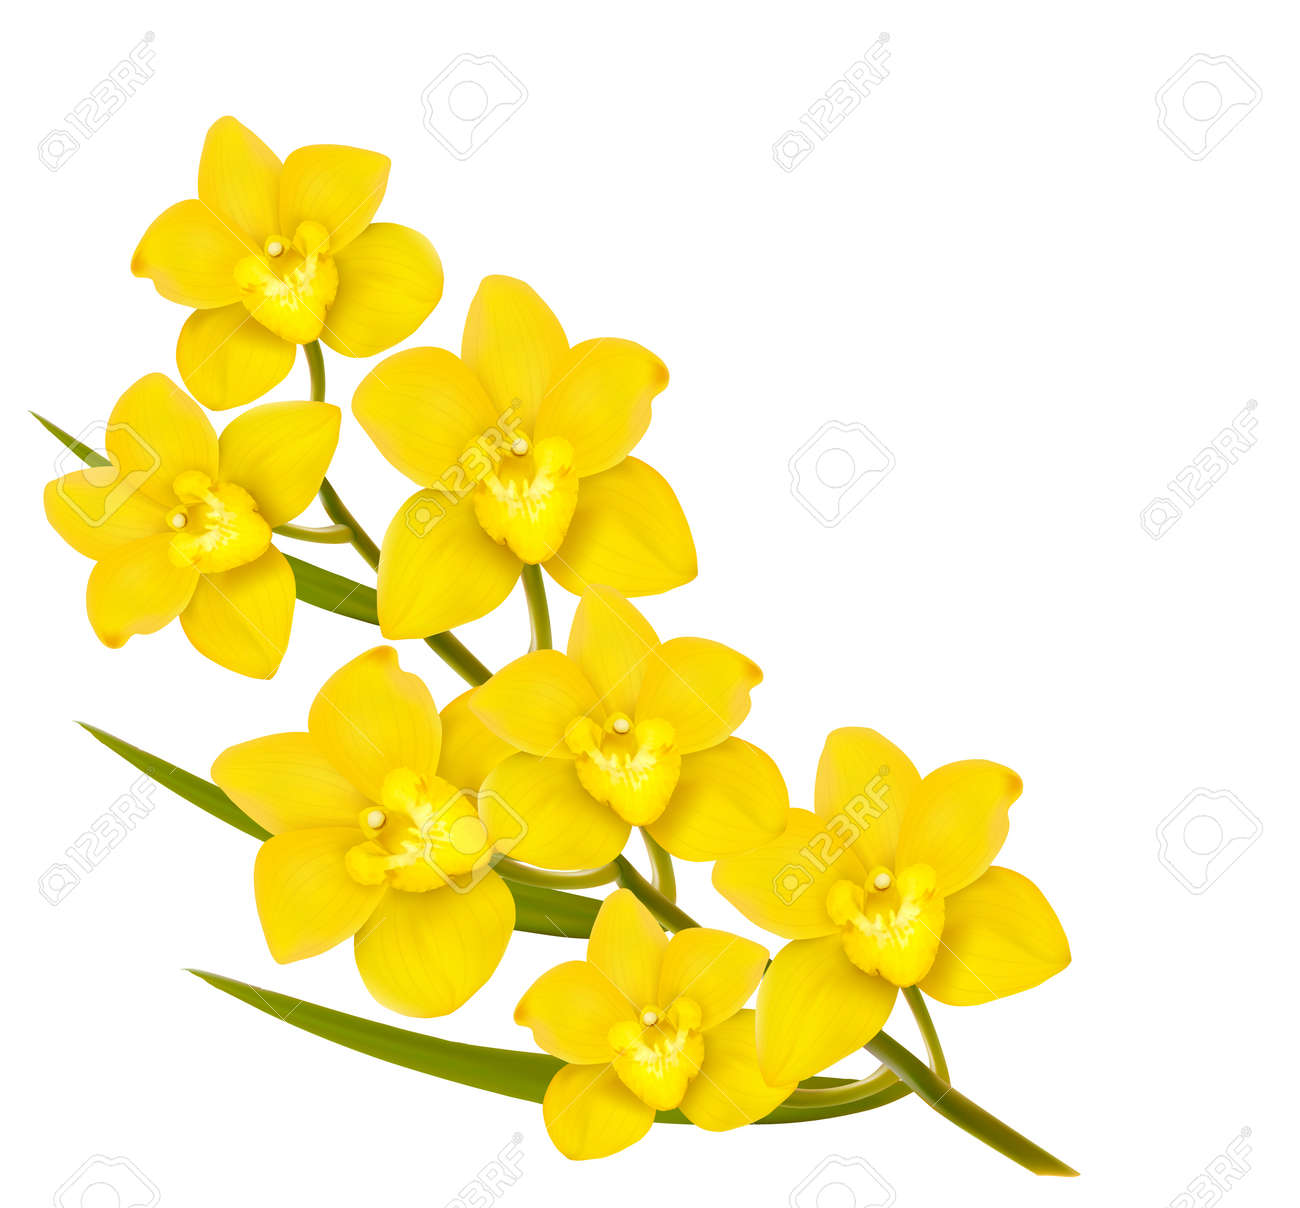 Holiday yellow flowers background vector royalty free cliparts holiday yellow flowers background vector stock vector 37153214 mightylinksfo